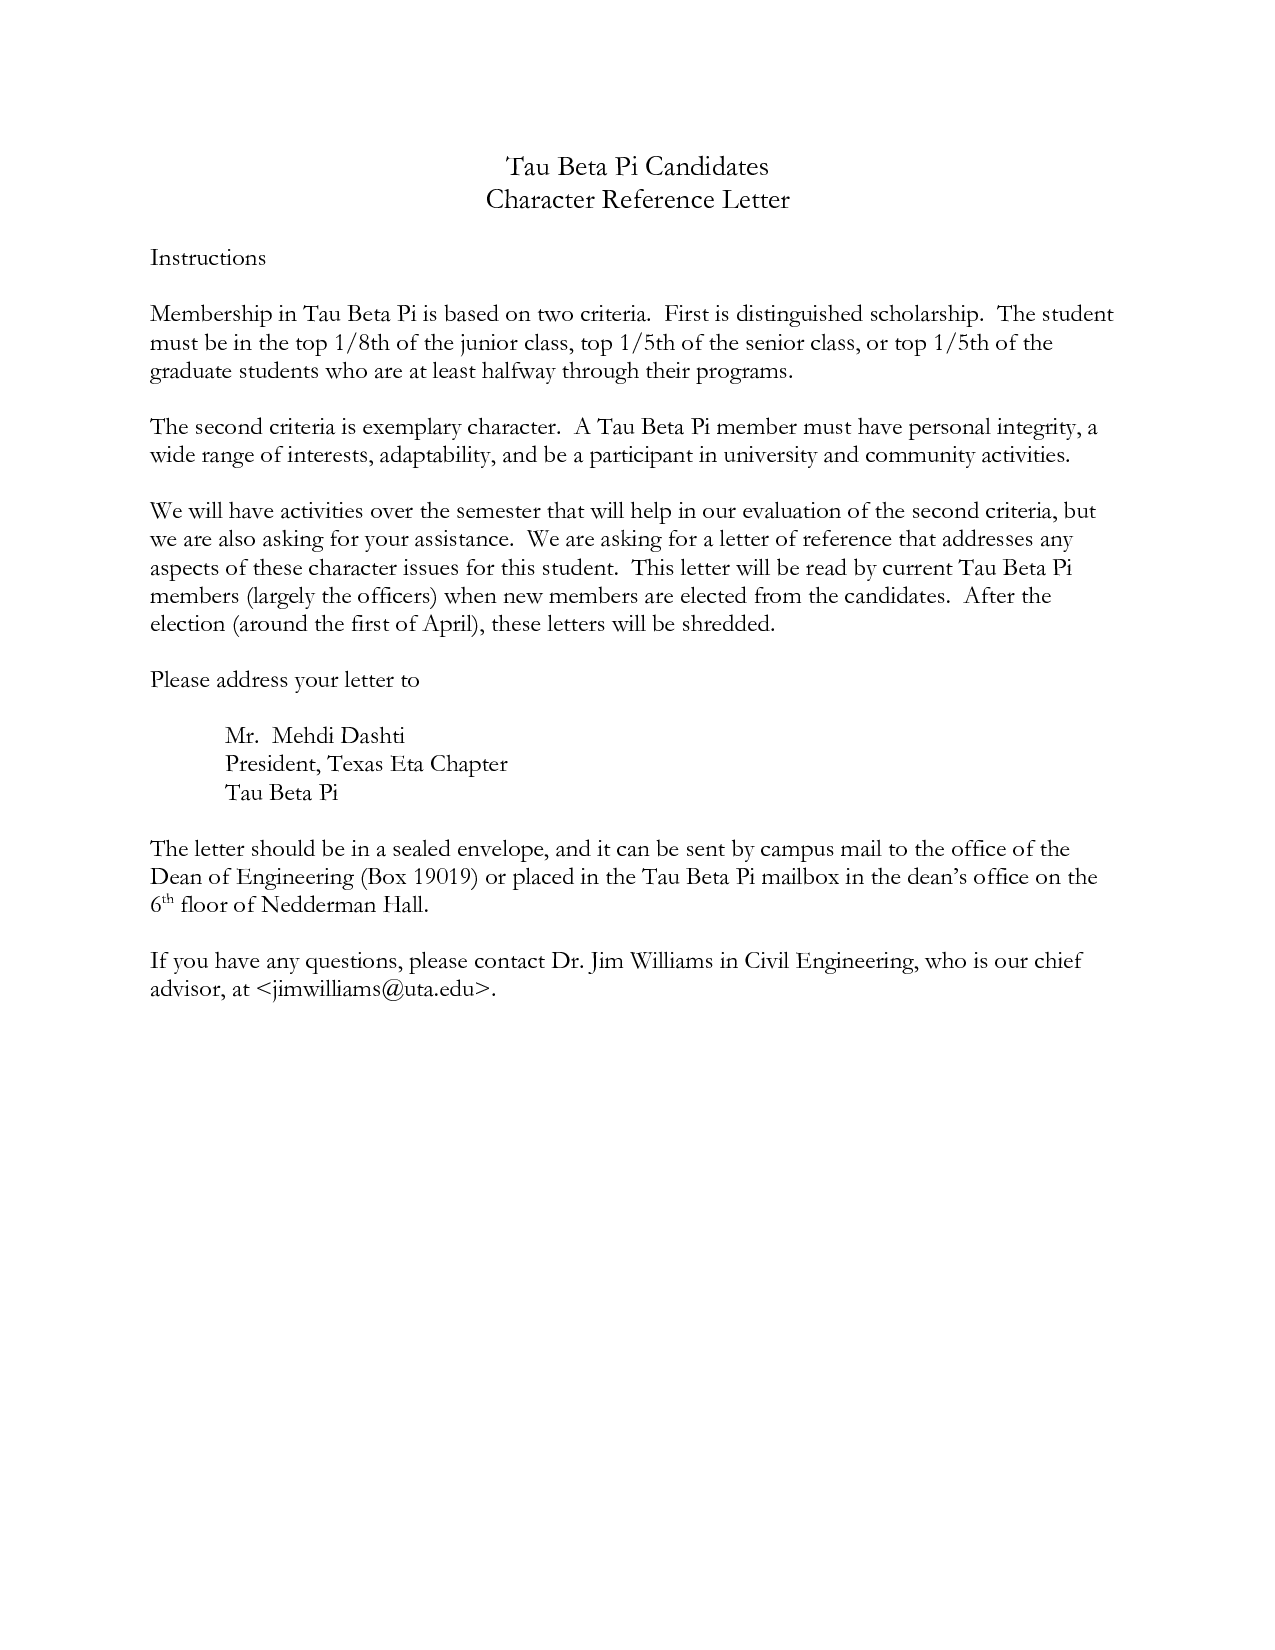 Medical Interpreter Resume Personal Character Reference Letter Apology With Recommendation